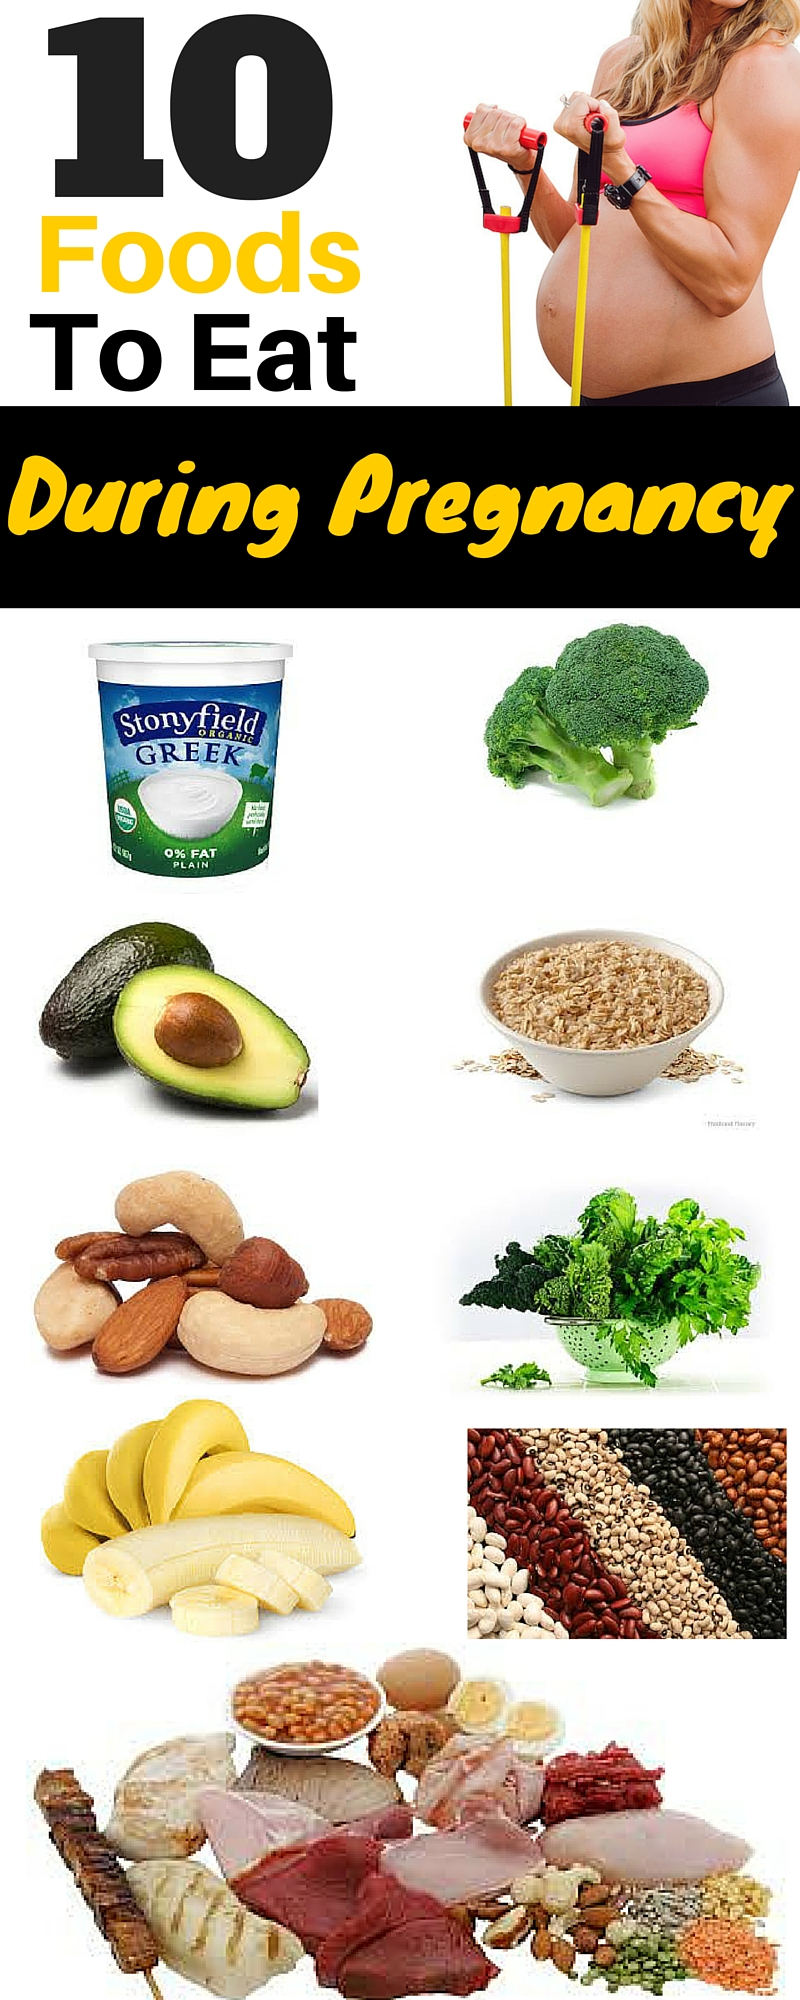 10 Foods To Eat During Pregnancy Michelle Marie Fit